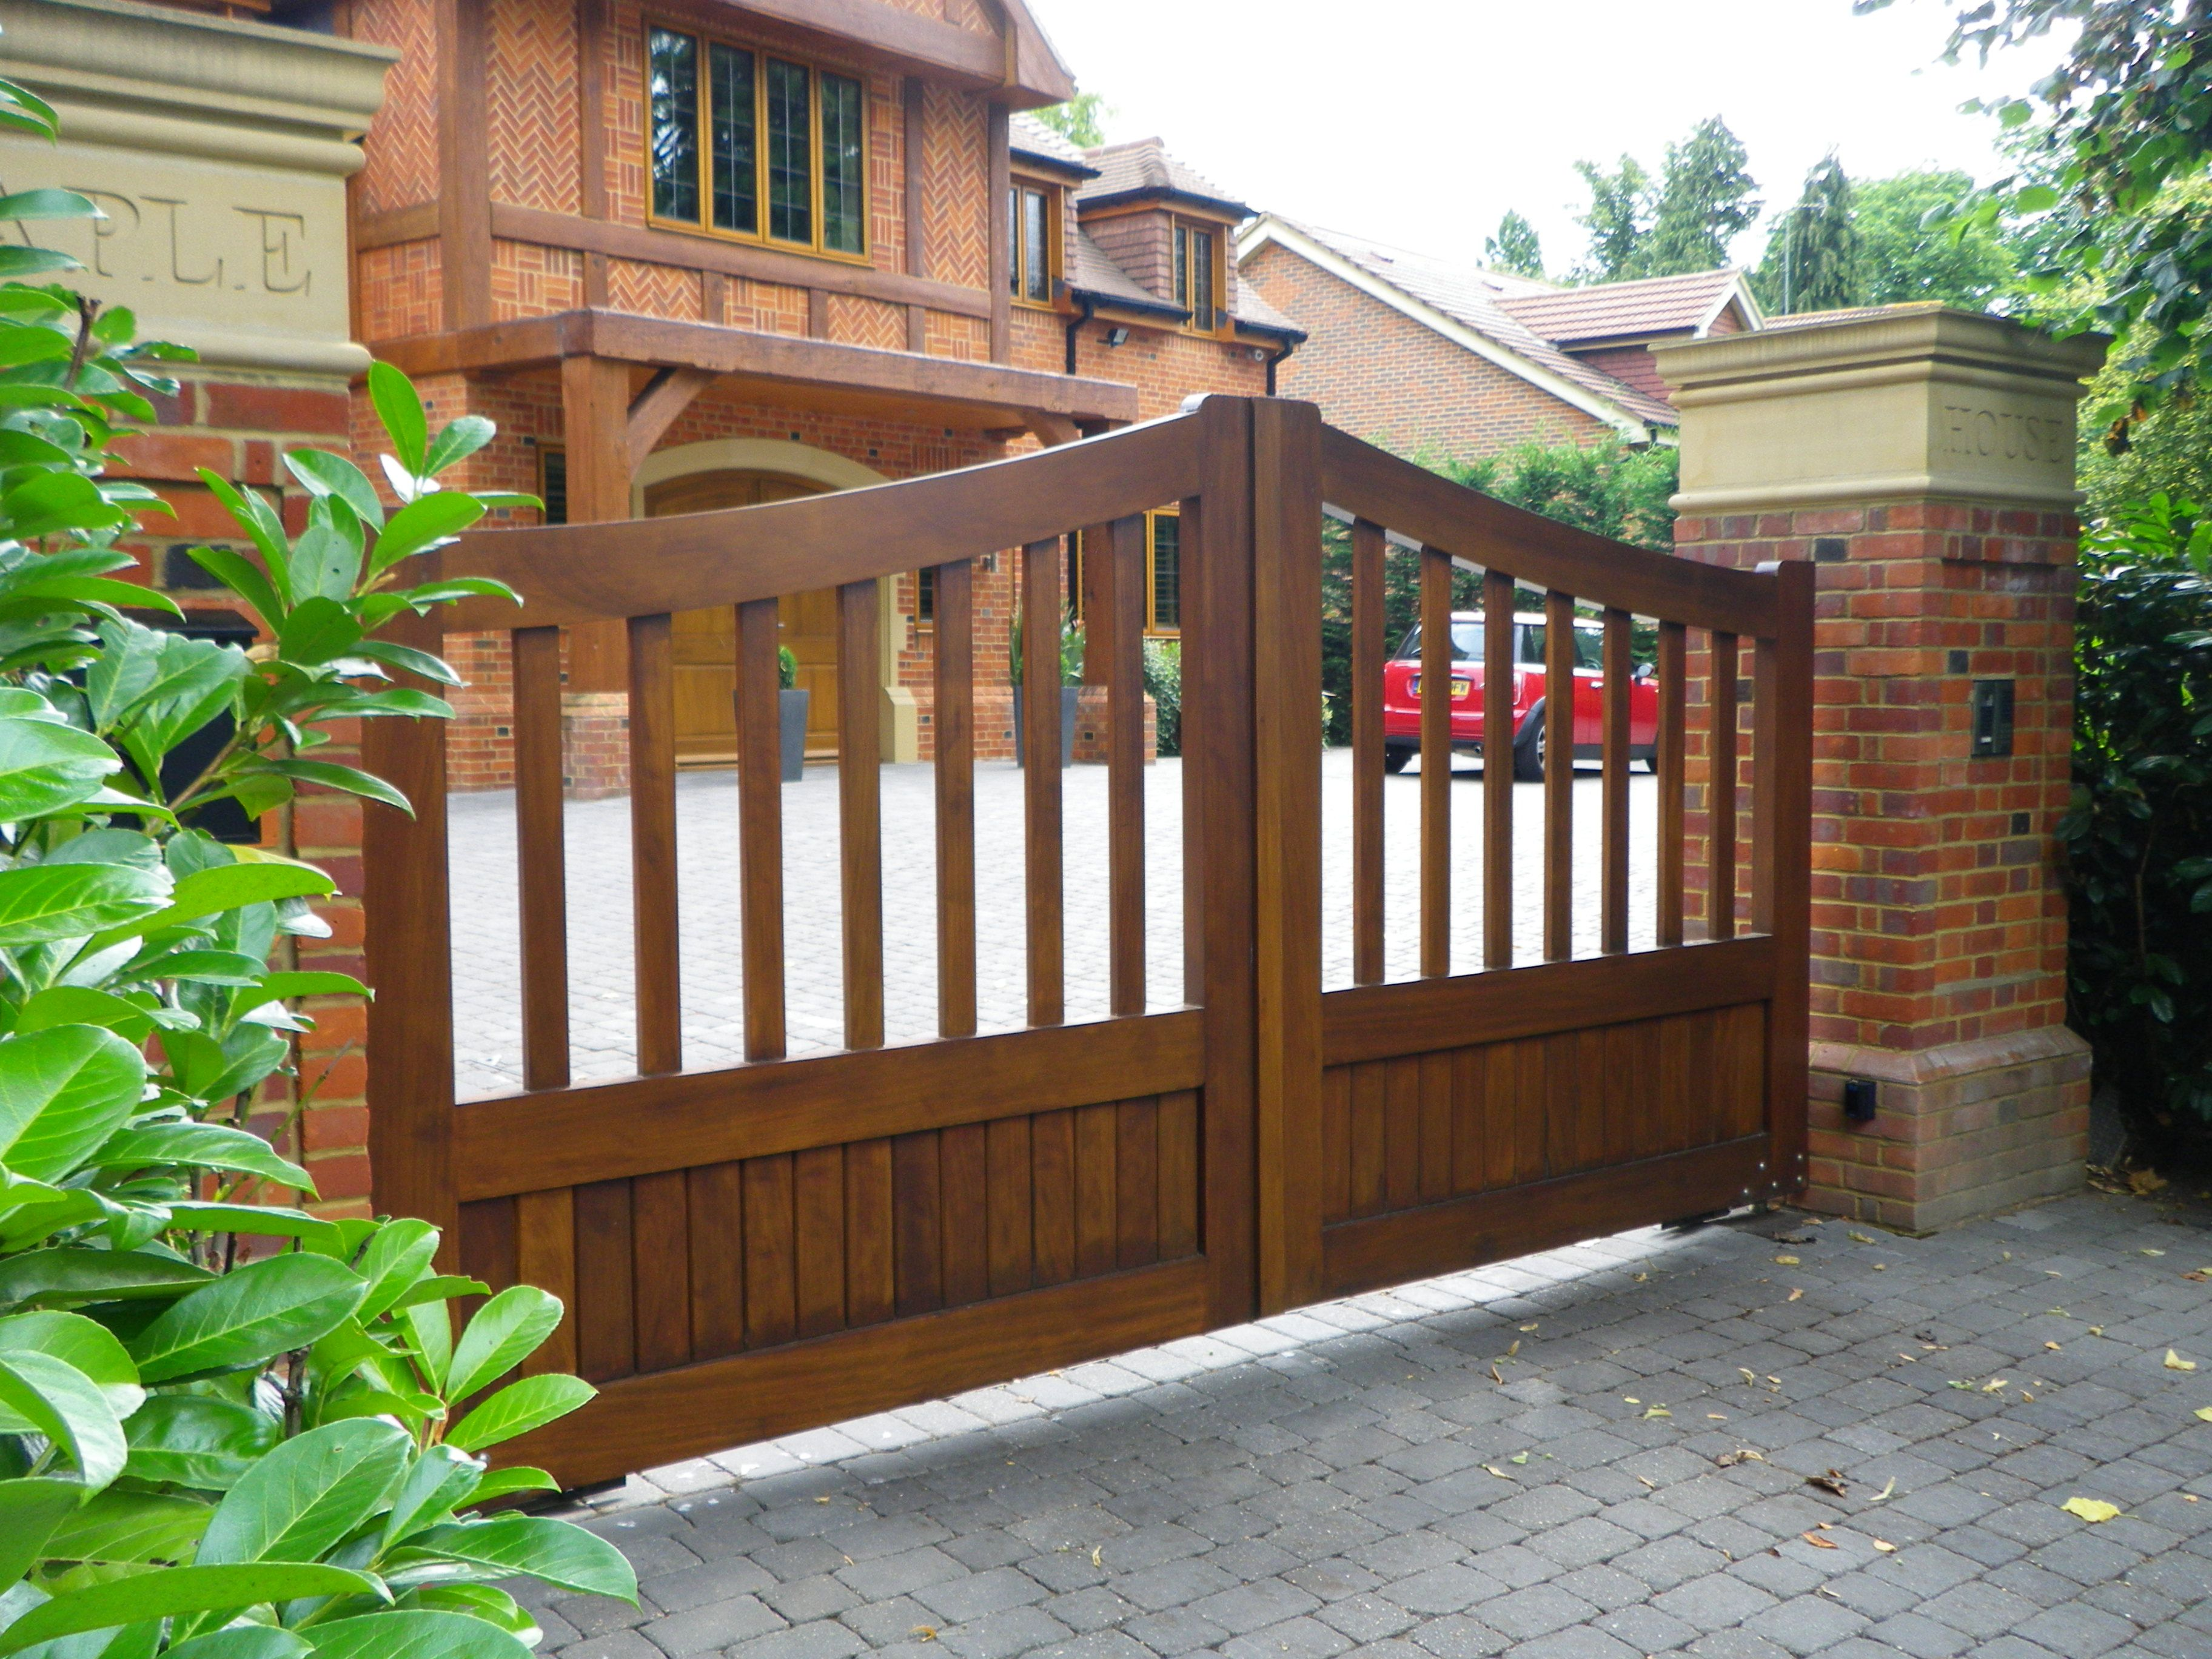 Timber Gates Electric Gates I Gate Repair I Surrey I Berkshire Front Gate Design Wooden Gate Designs Wooden Garden Gate